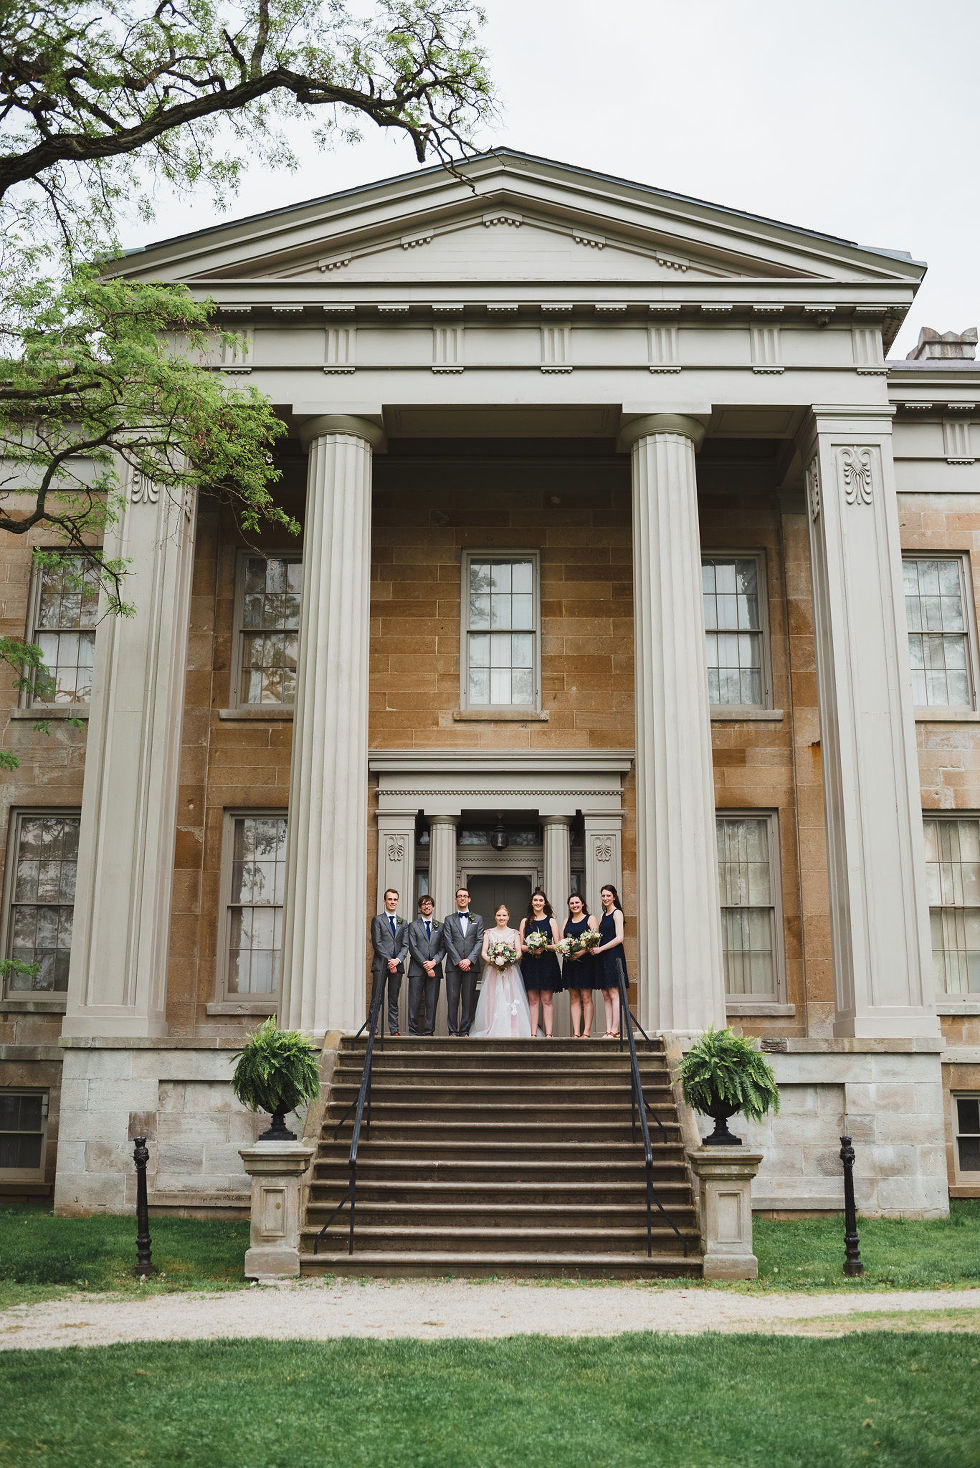 bride and groom standing between their wedding party on stone steps between Greek stone columns of the Ruthven National Historic Site near Hamilton